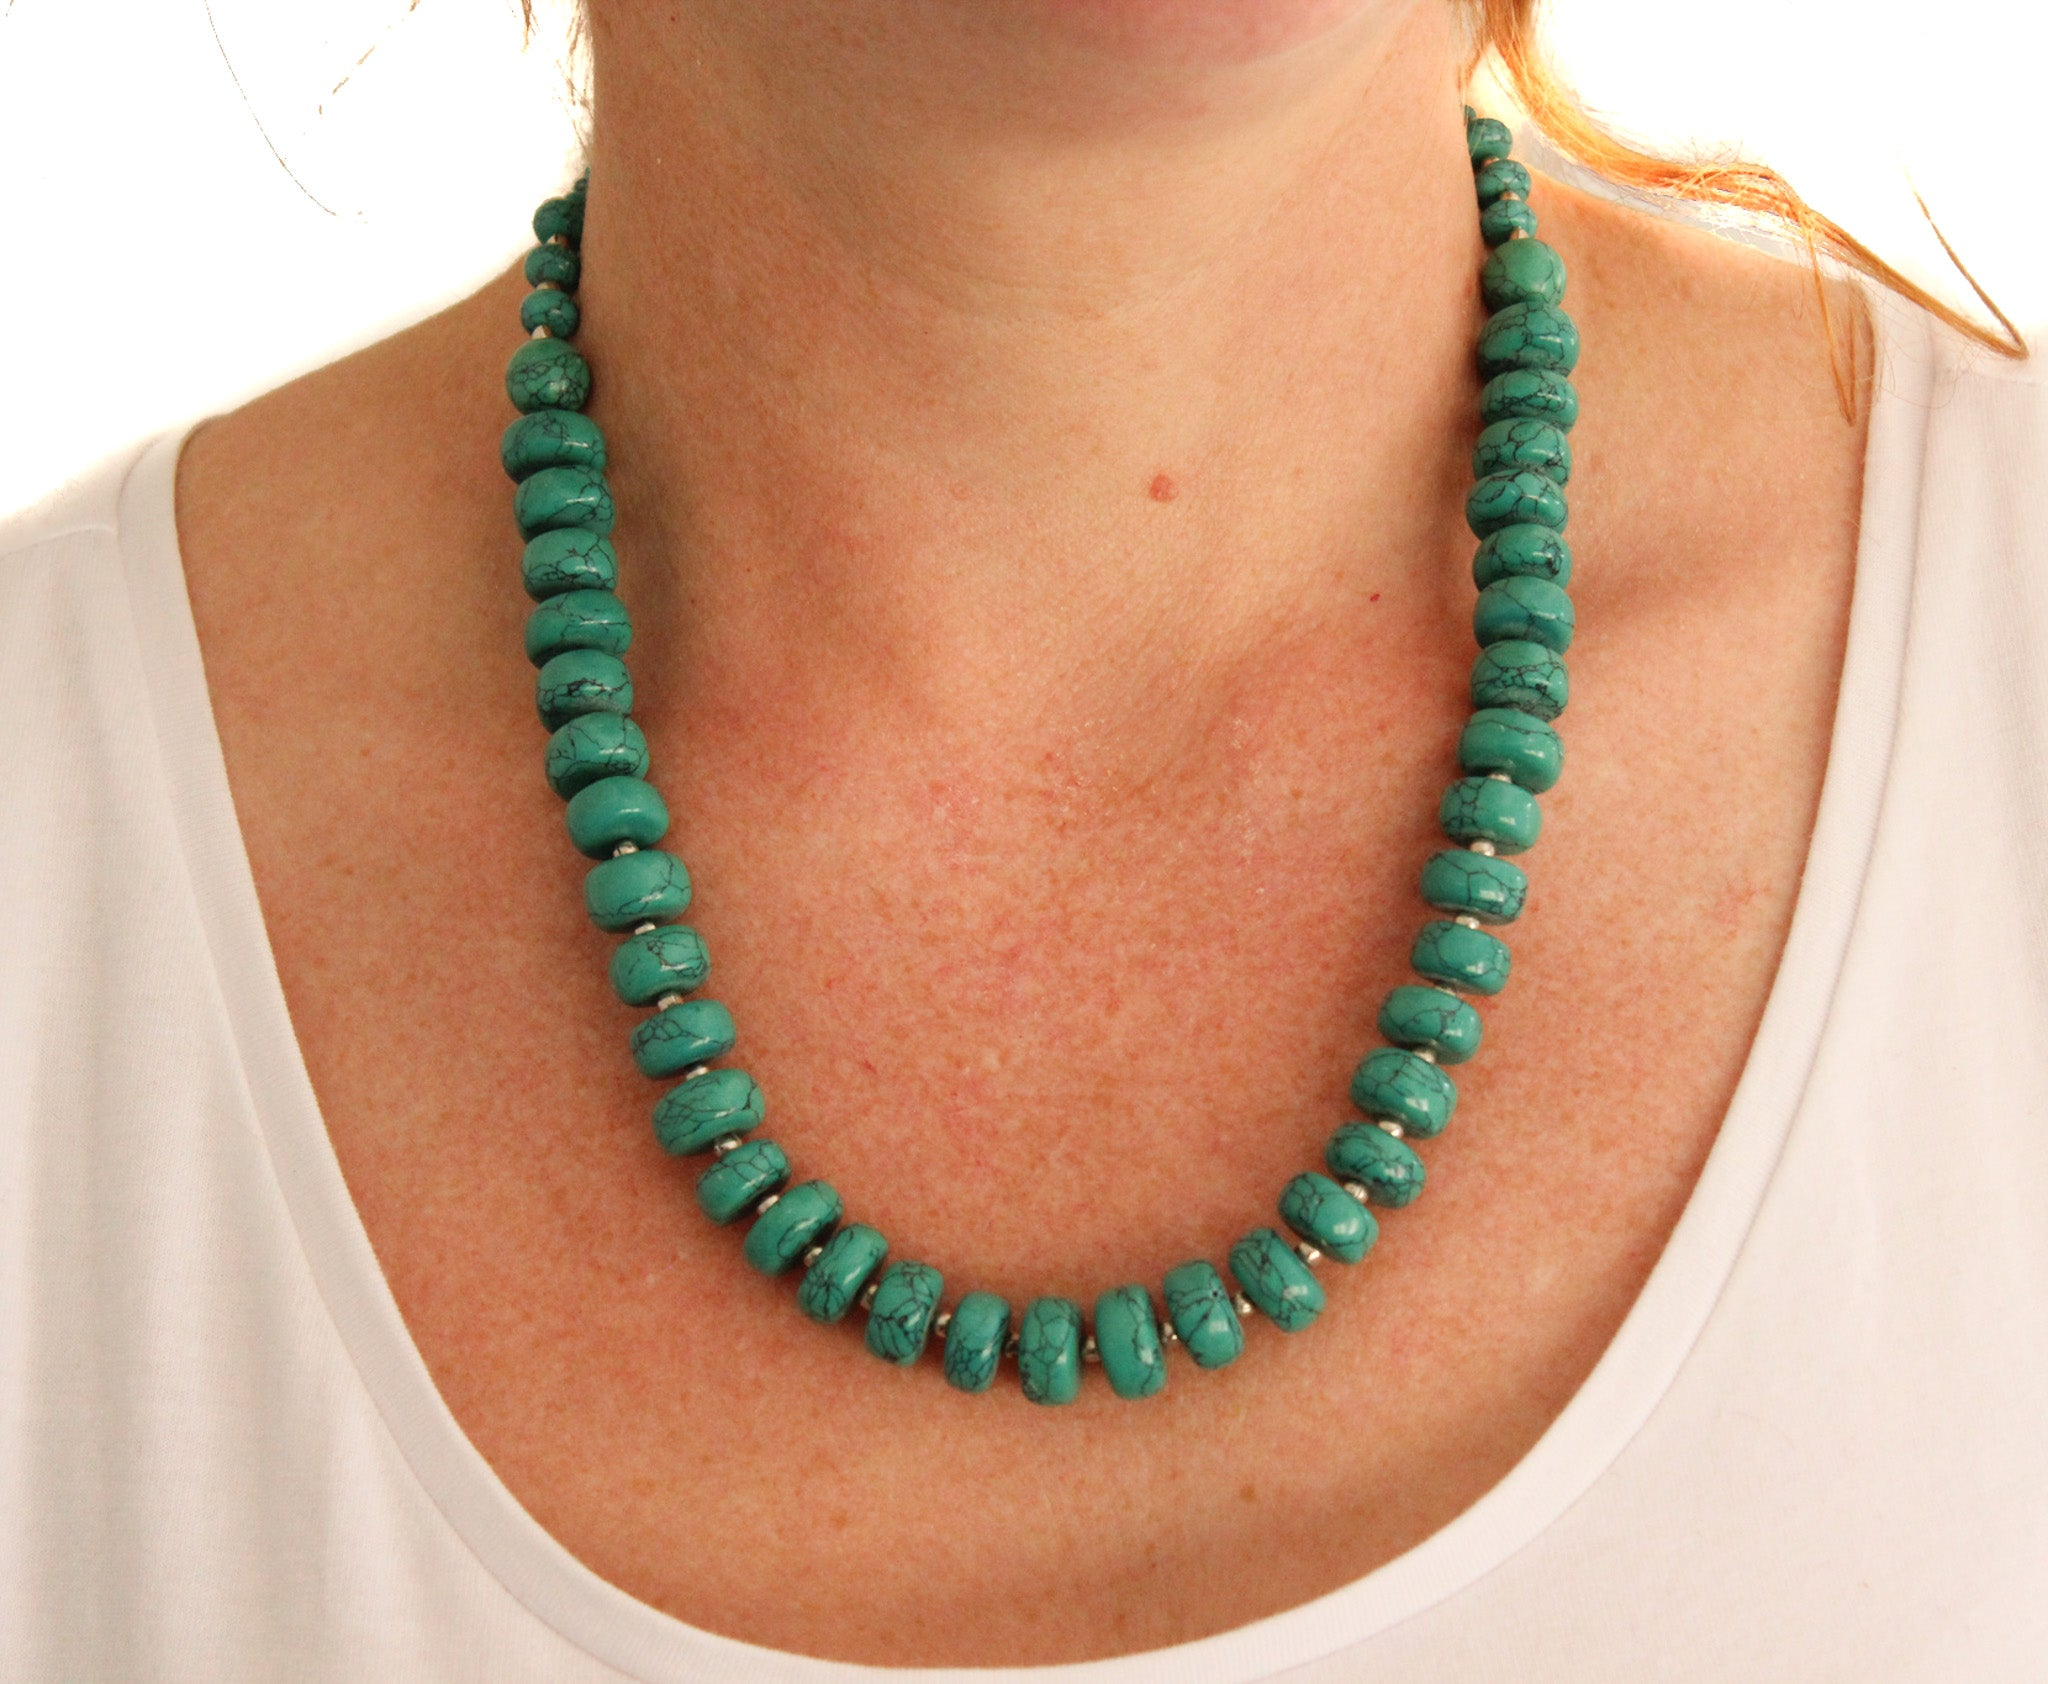 Turquoise strand necklaces